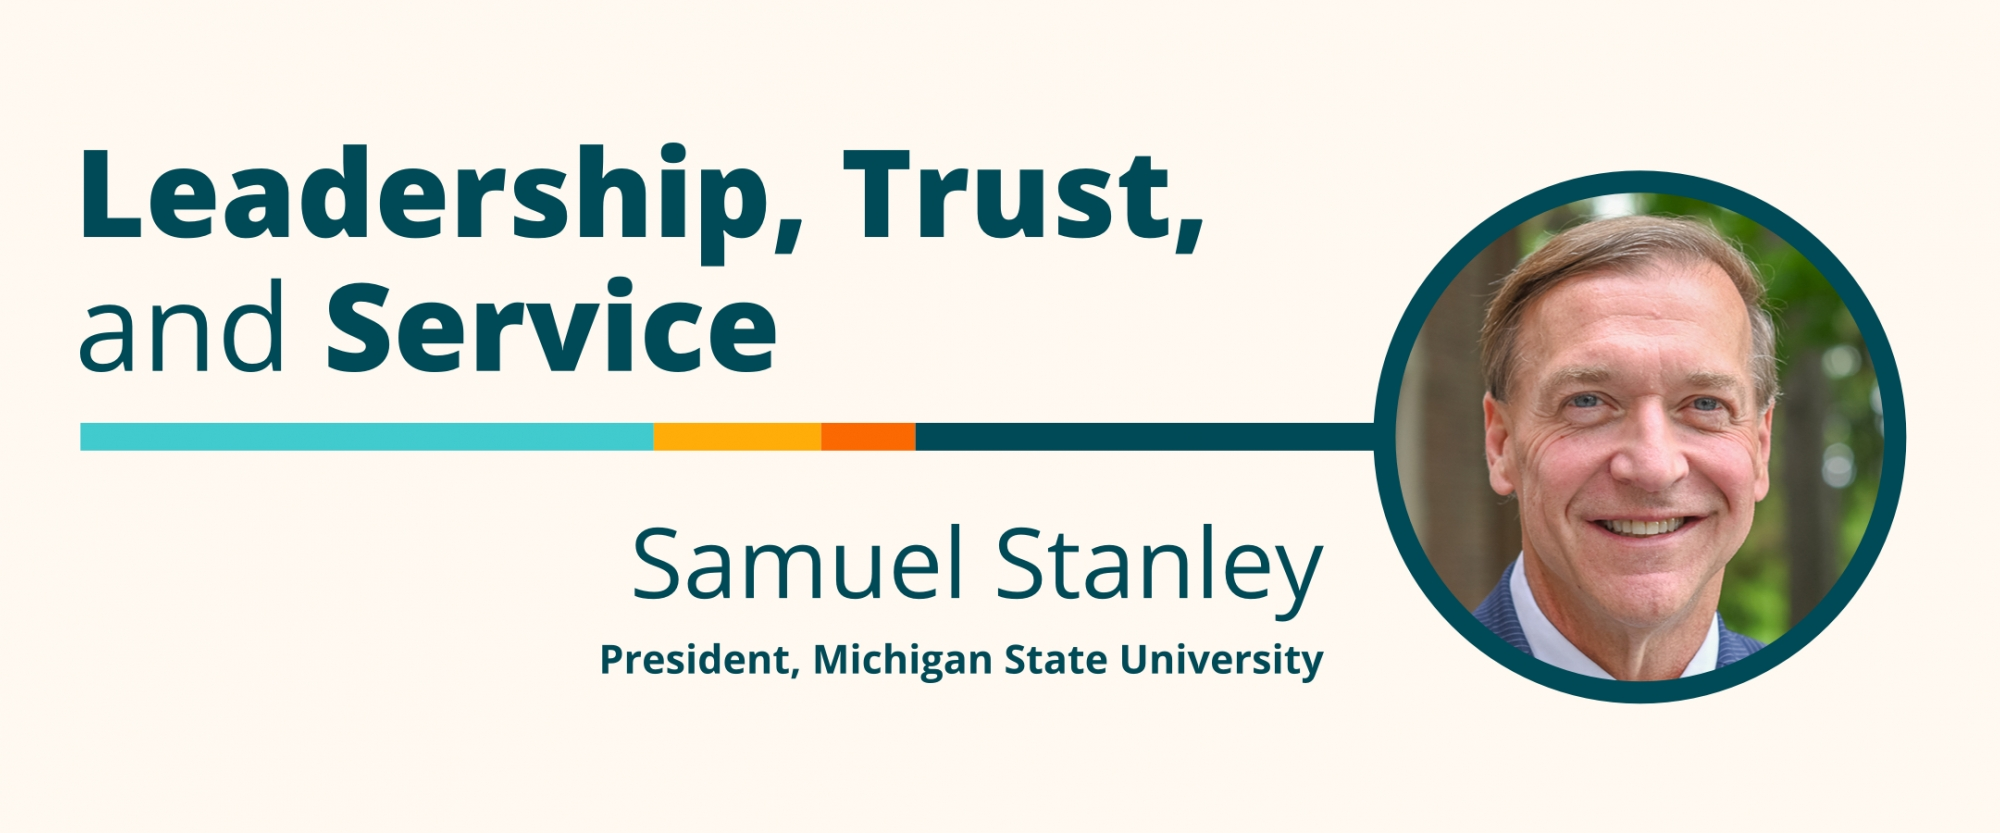 Leadership, Trust, and Service